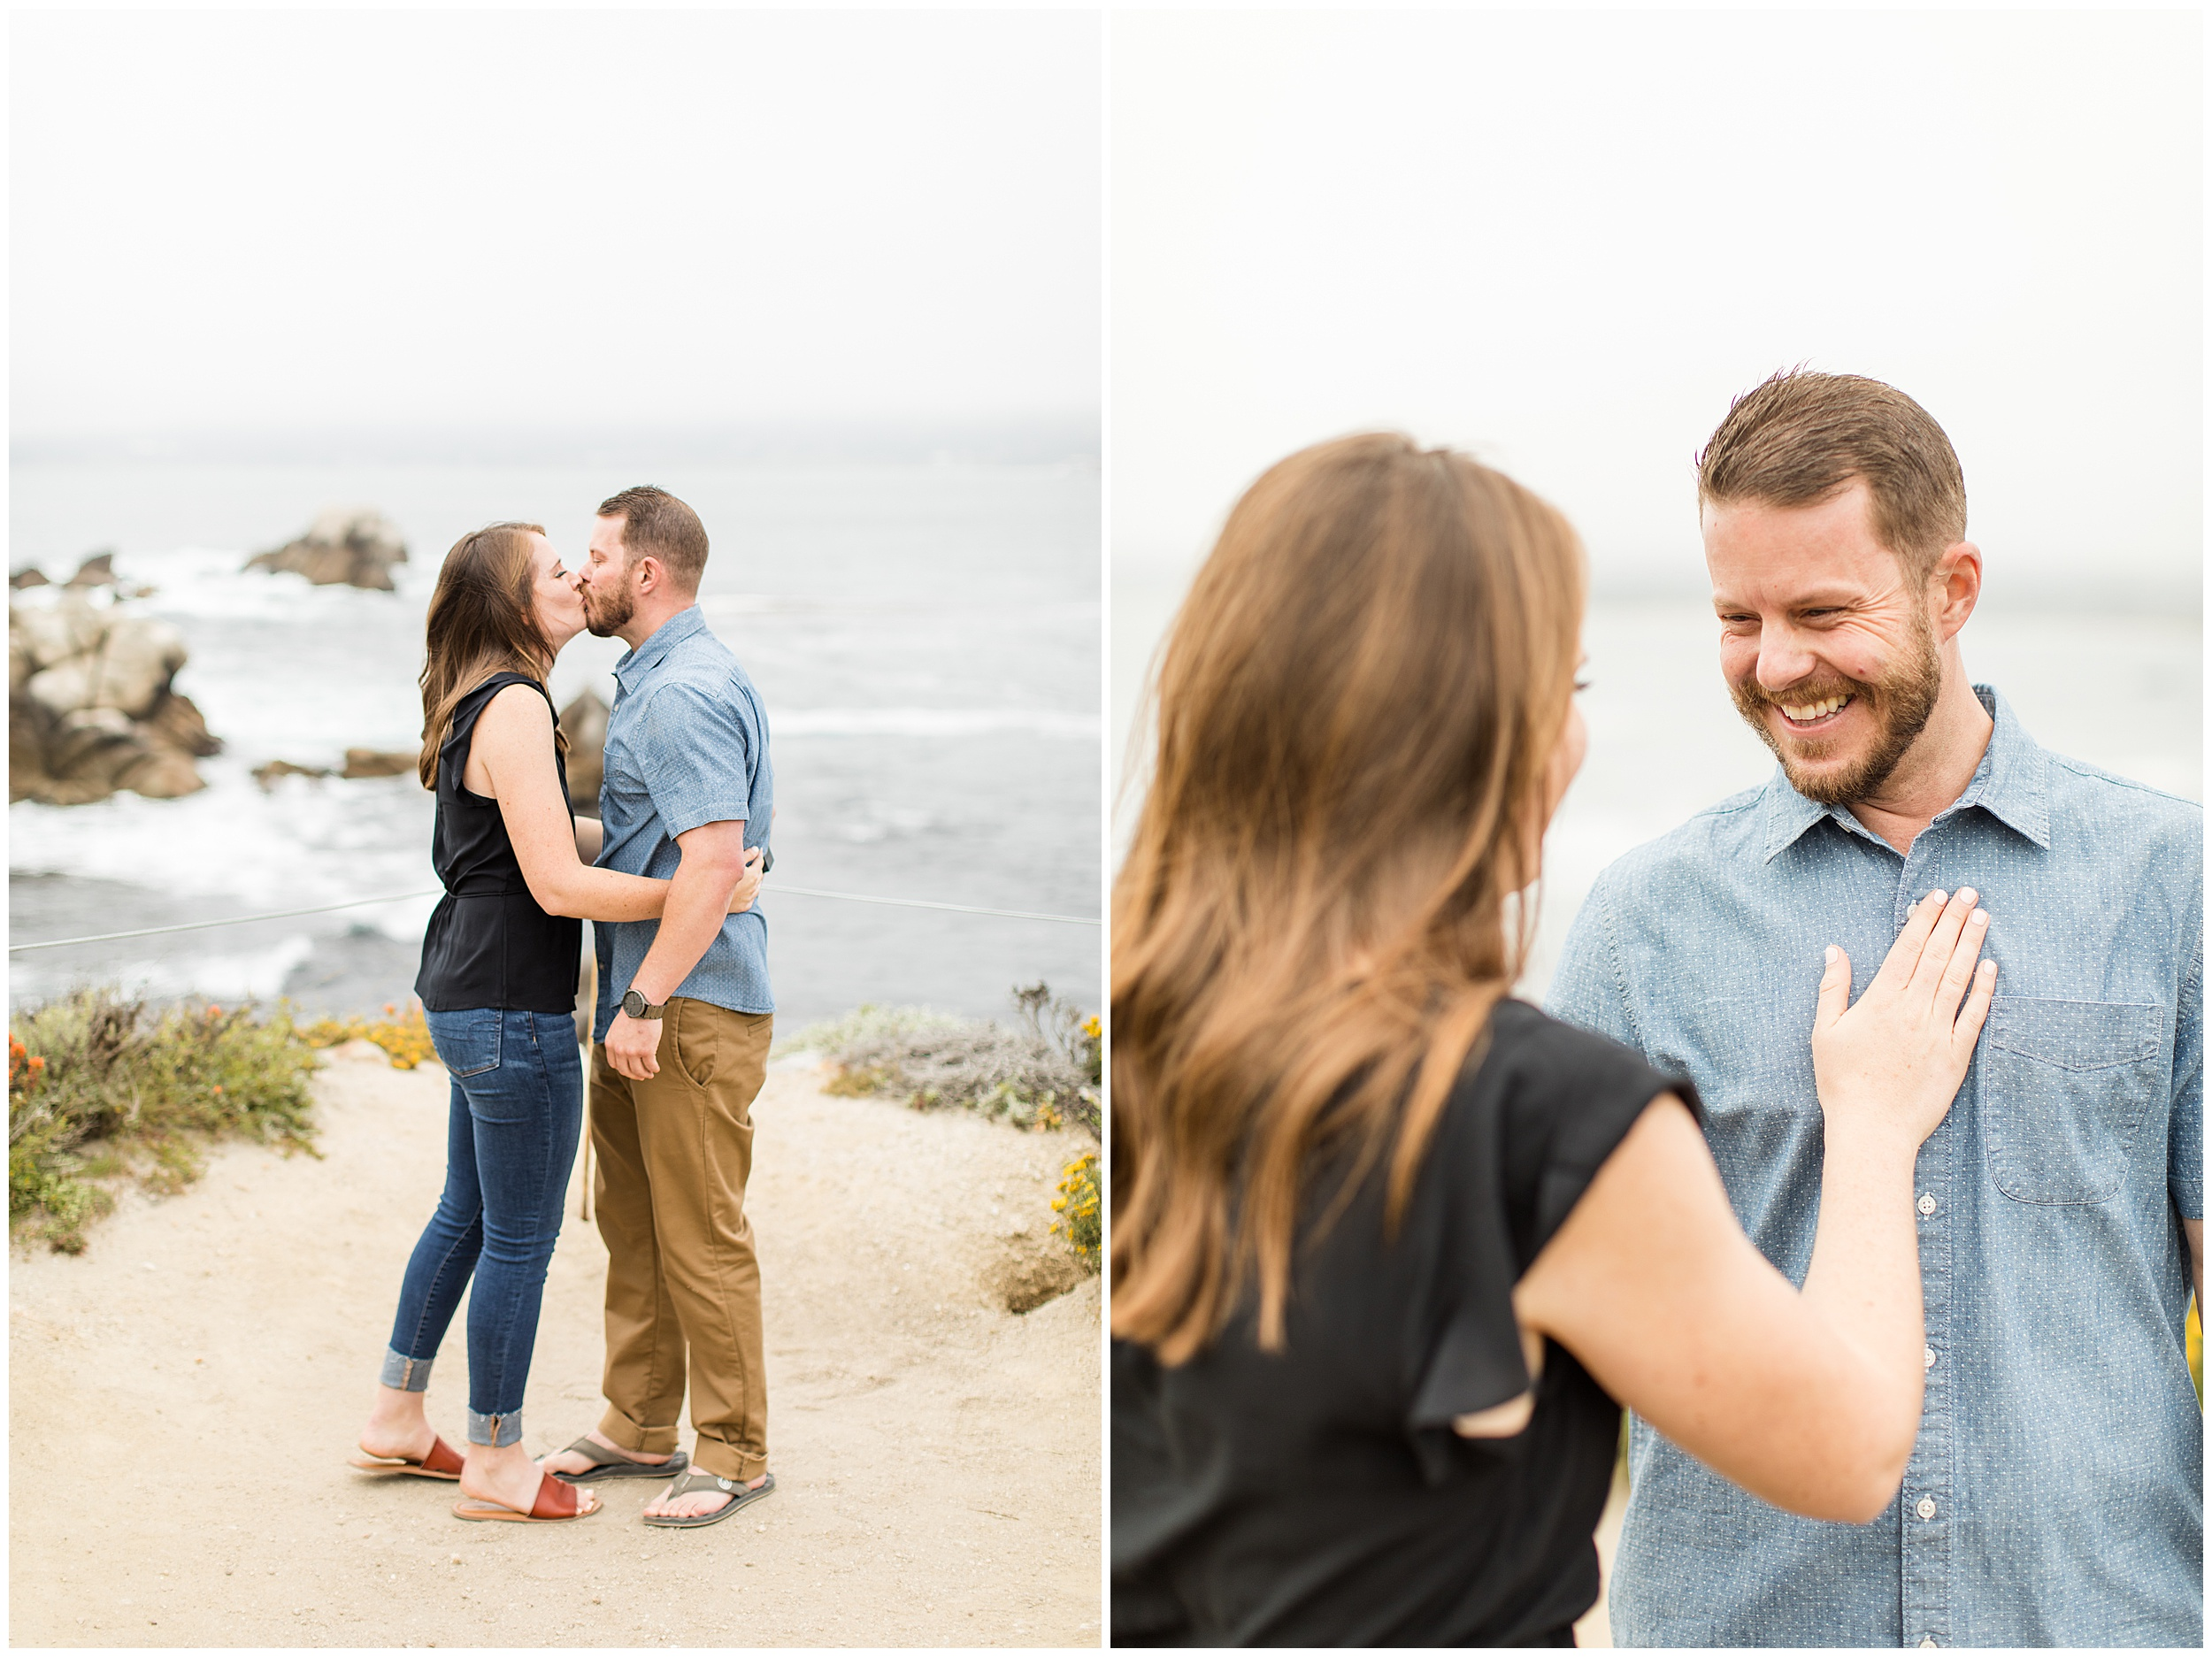 2019 carmel by the sea surprise proposal engagement session wedding photographer angela sue photography_0006.jpg